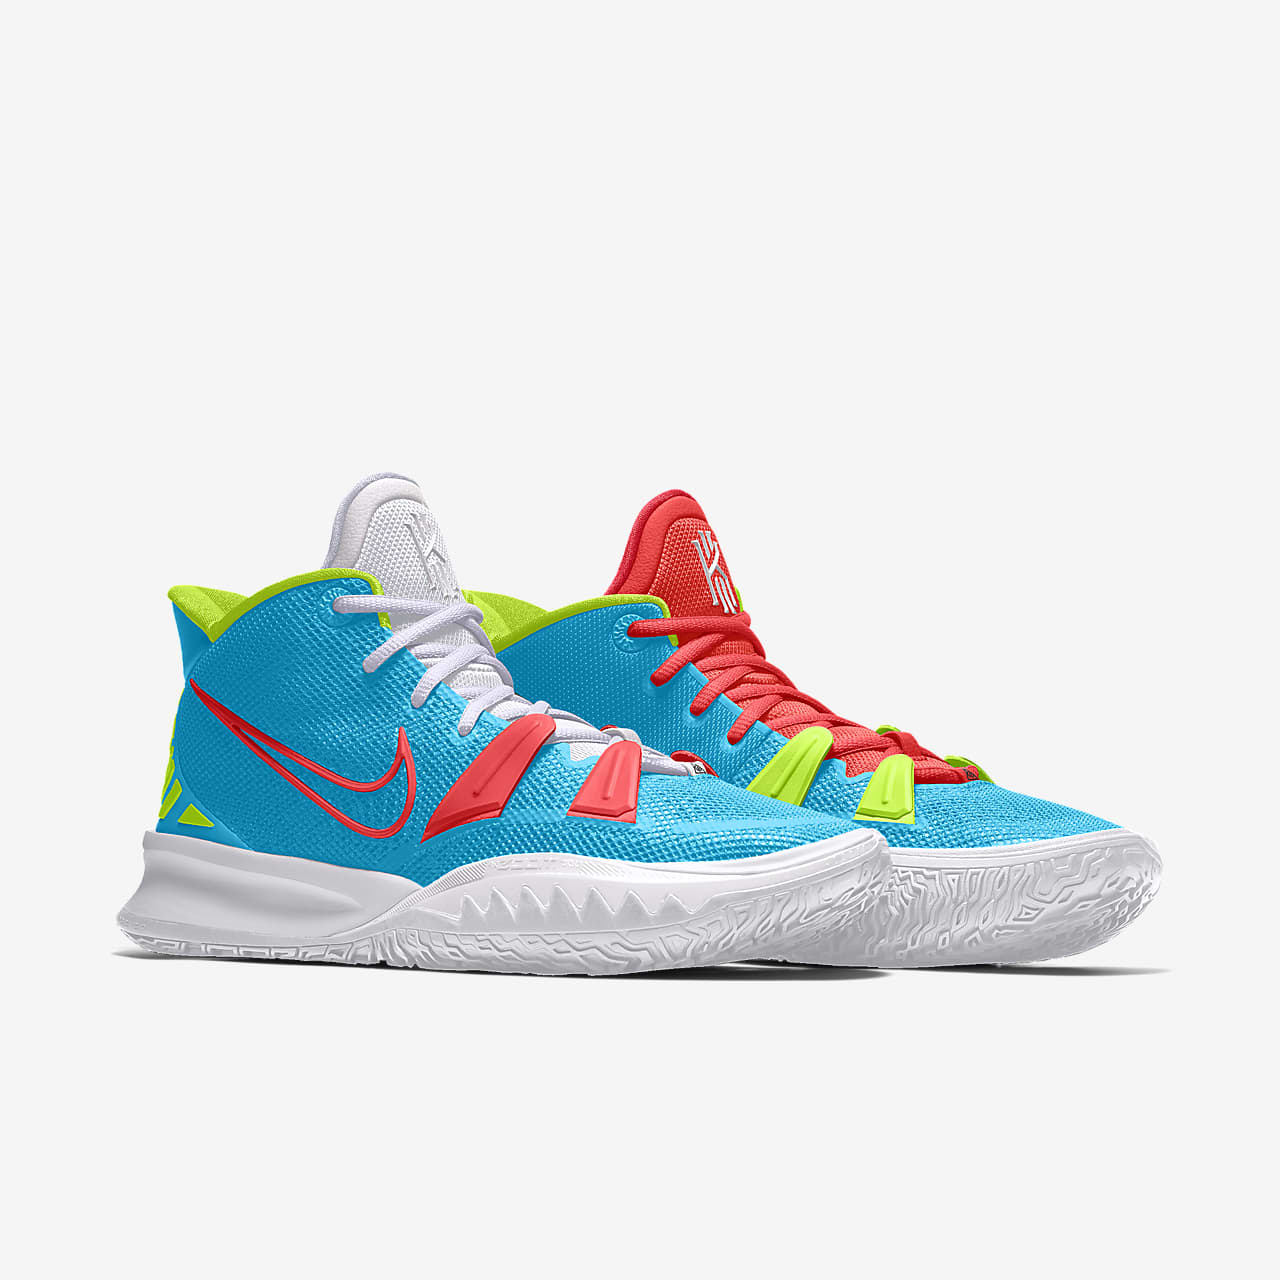 afijo Despedida Continuo  Kyrie 7 By You Custom Basketball Shoe. Nike ID